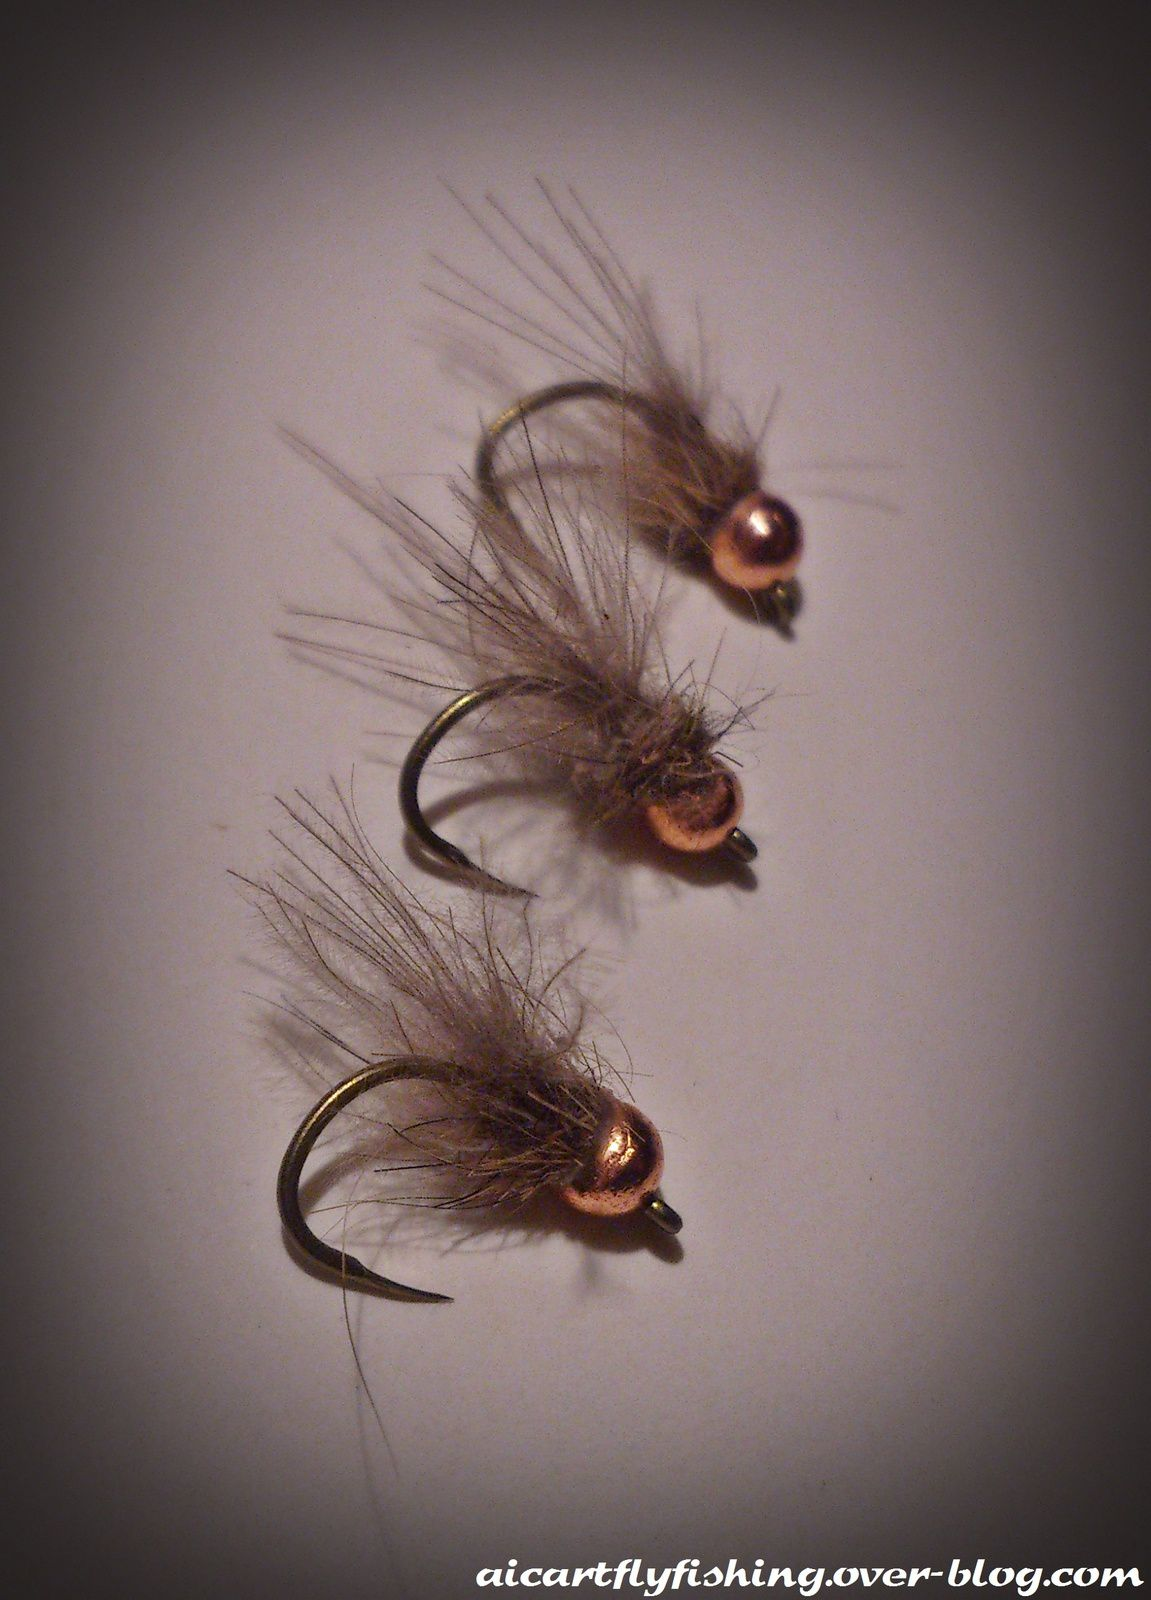 El Tándem Perfecto - The Perfect Couple. Nimph + Dry fly.